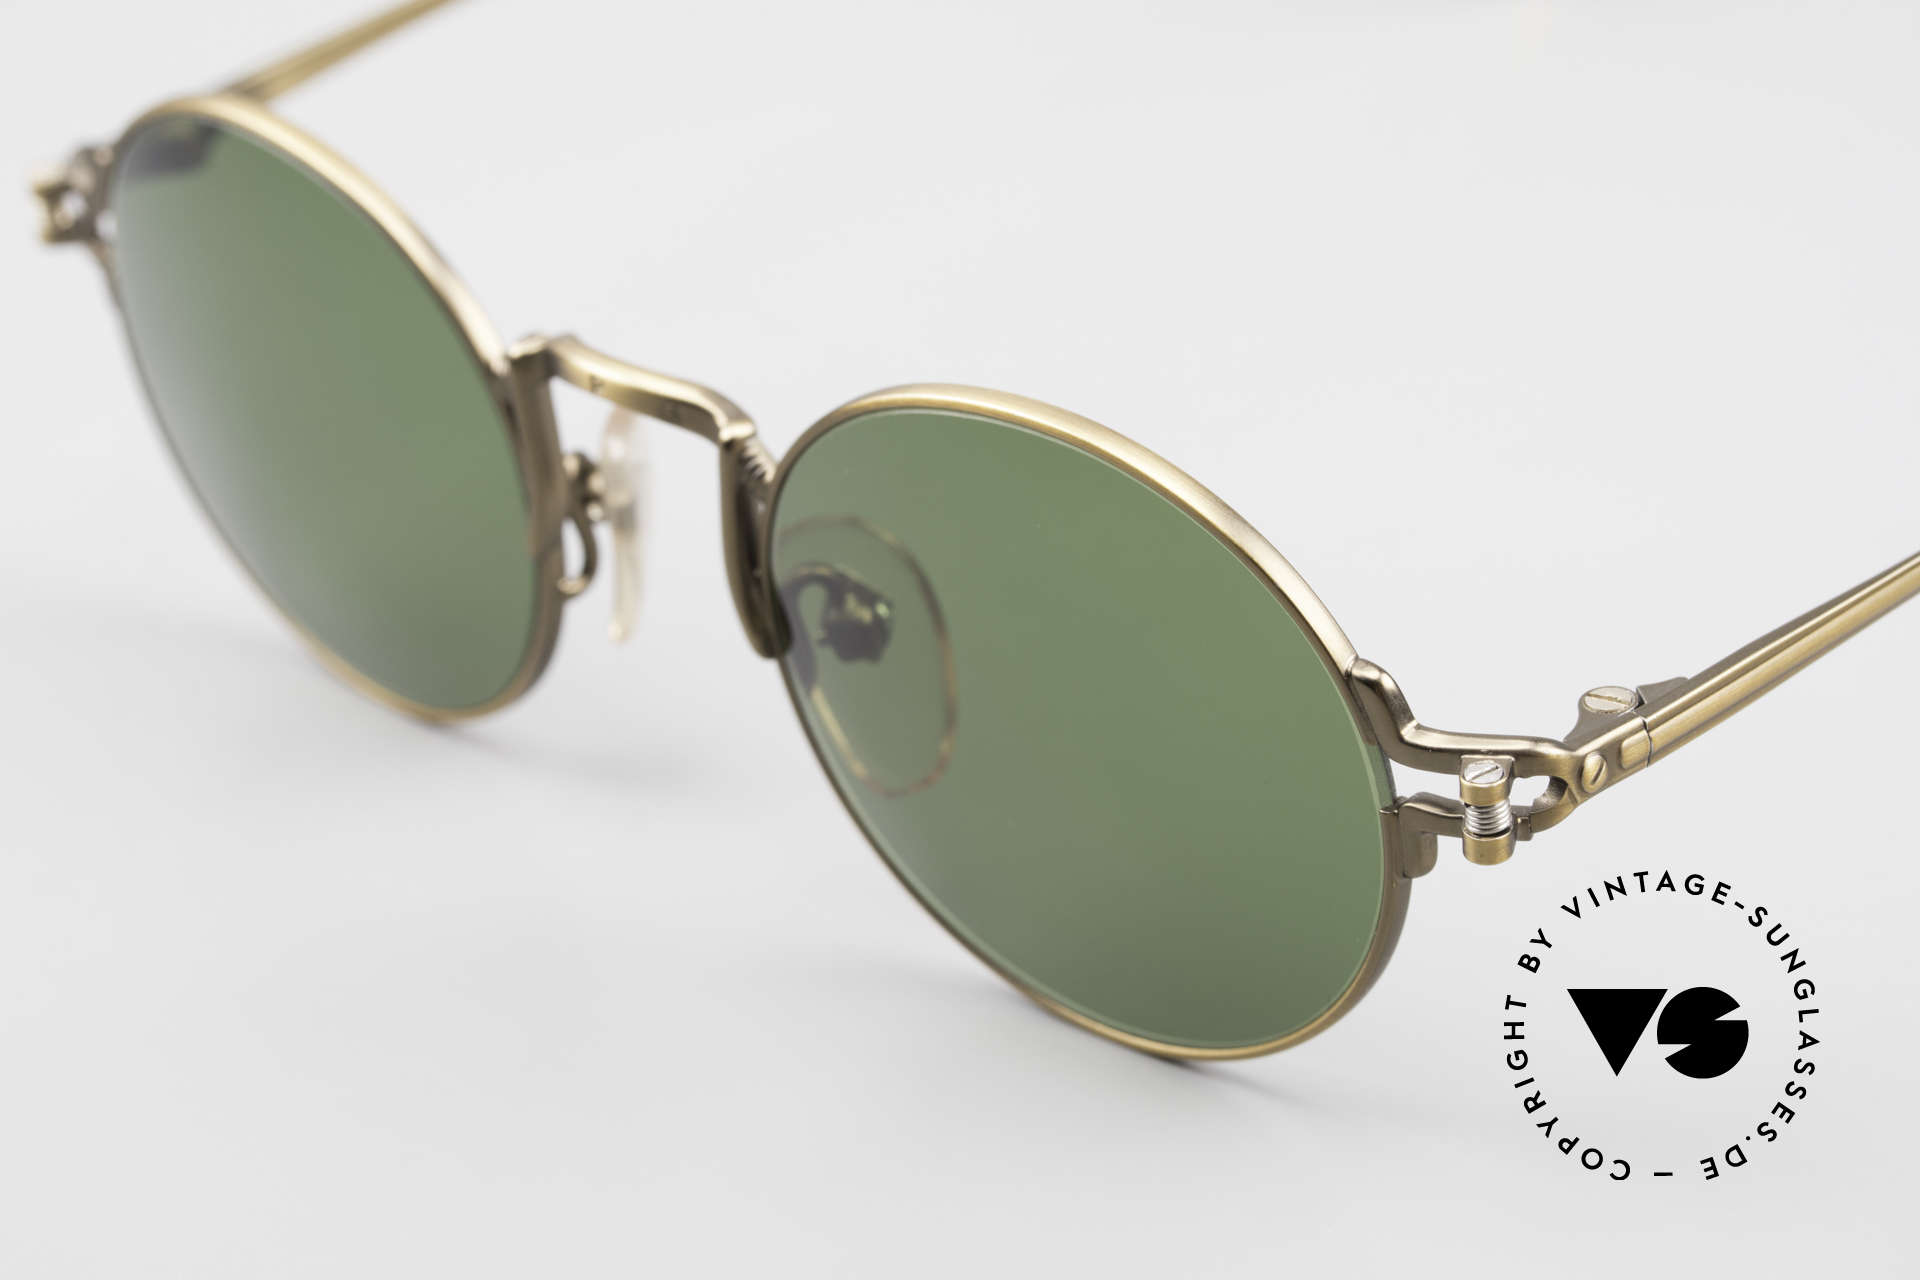 Jean Paul Gaultier 55-3171 Round 90's JPG Sunglasses, outstanding craftsmanship (made in Japan), size 46/20, Made for Men and Women